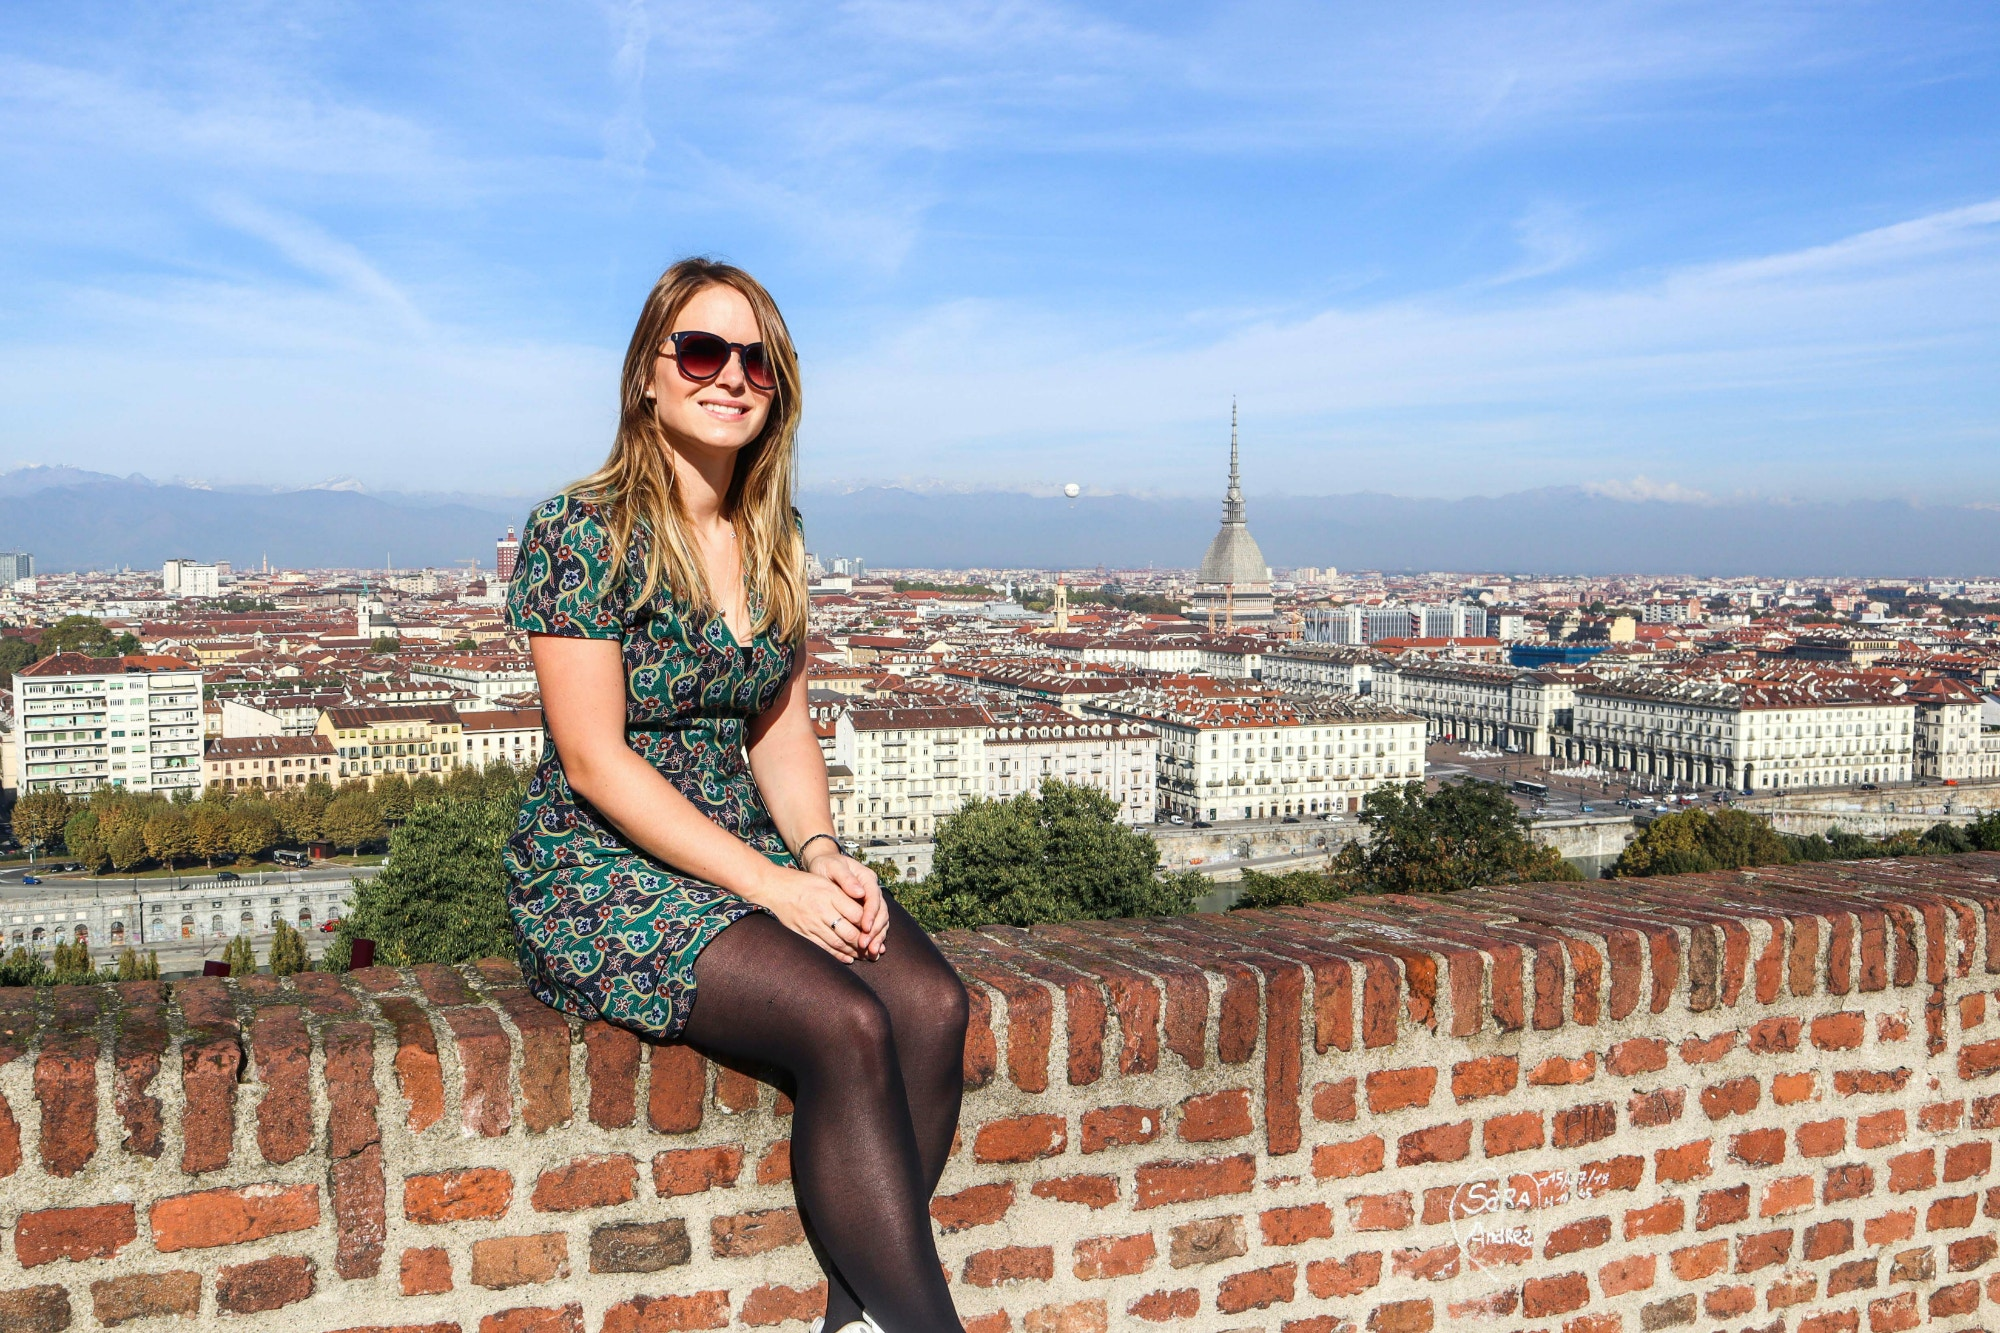 Lonely Planet Pathfinder and blogger Chloe Gunning in Turin, Italy